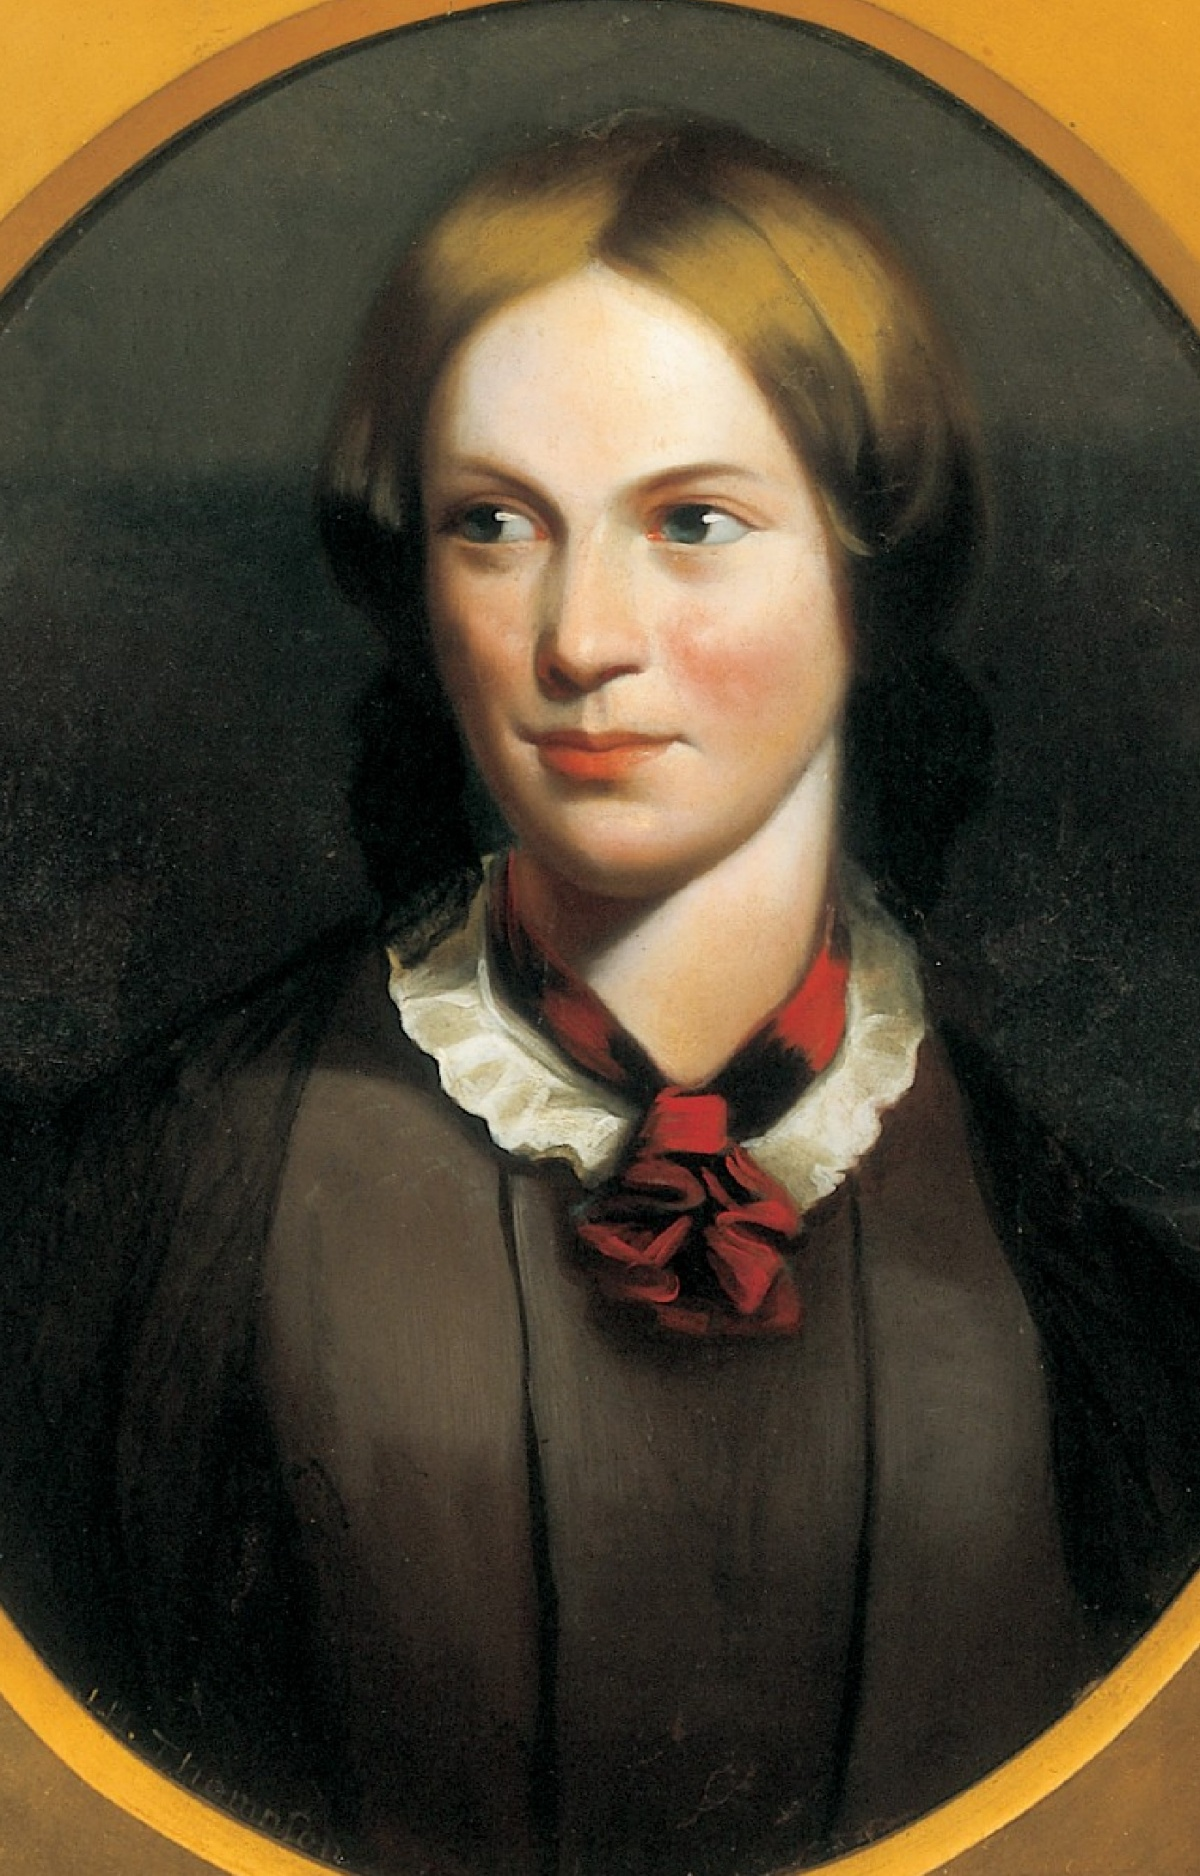 ©The Brontë Society